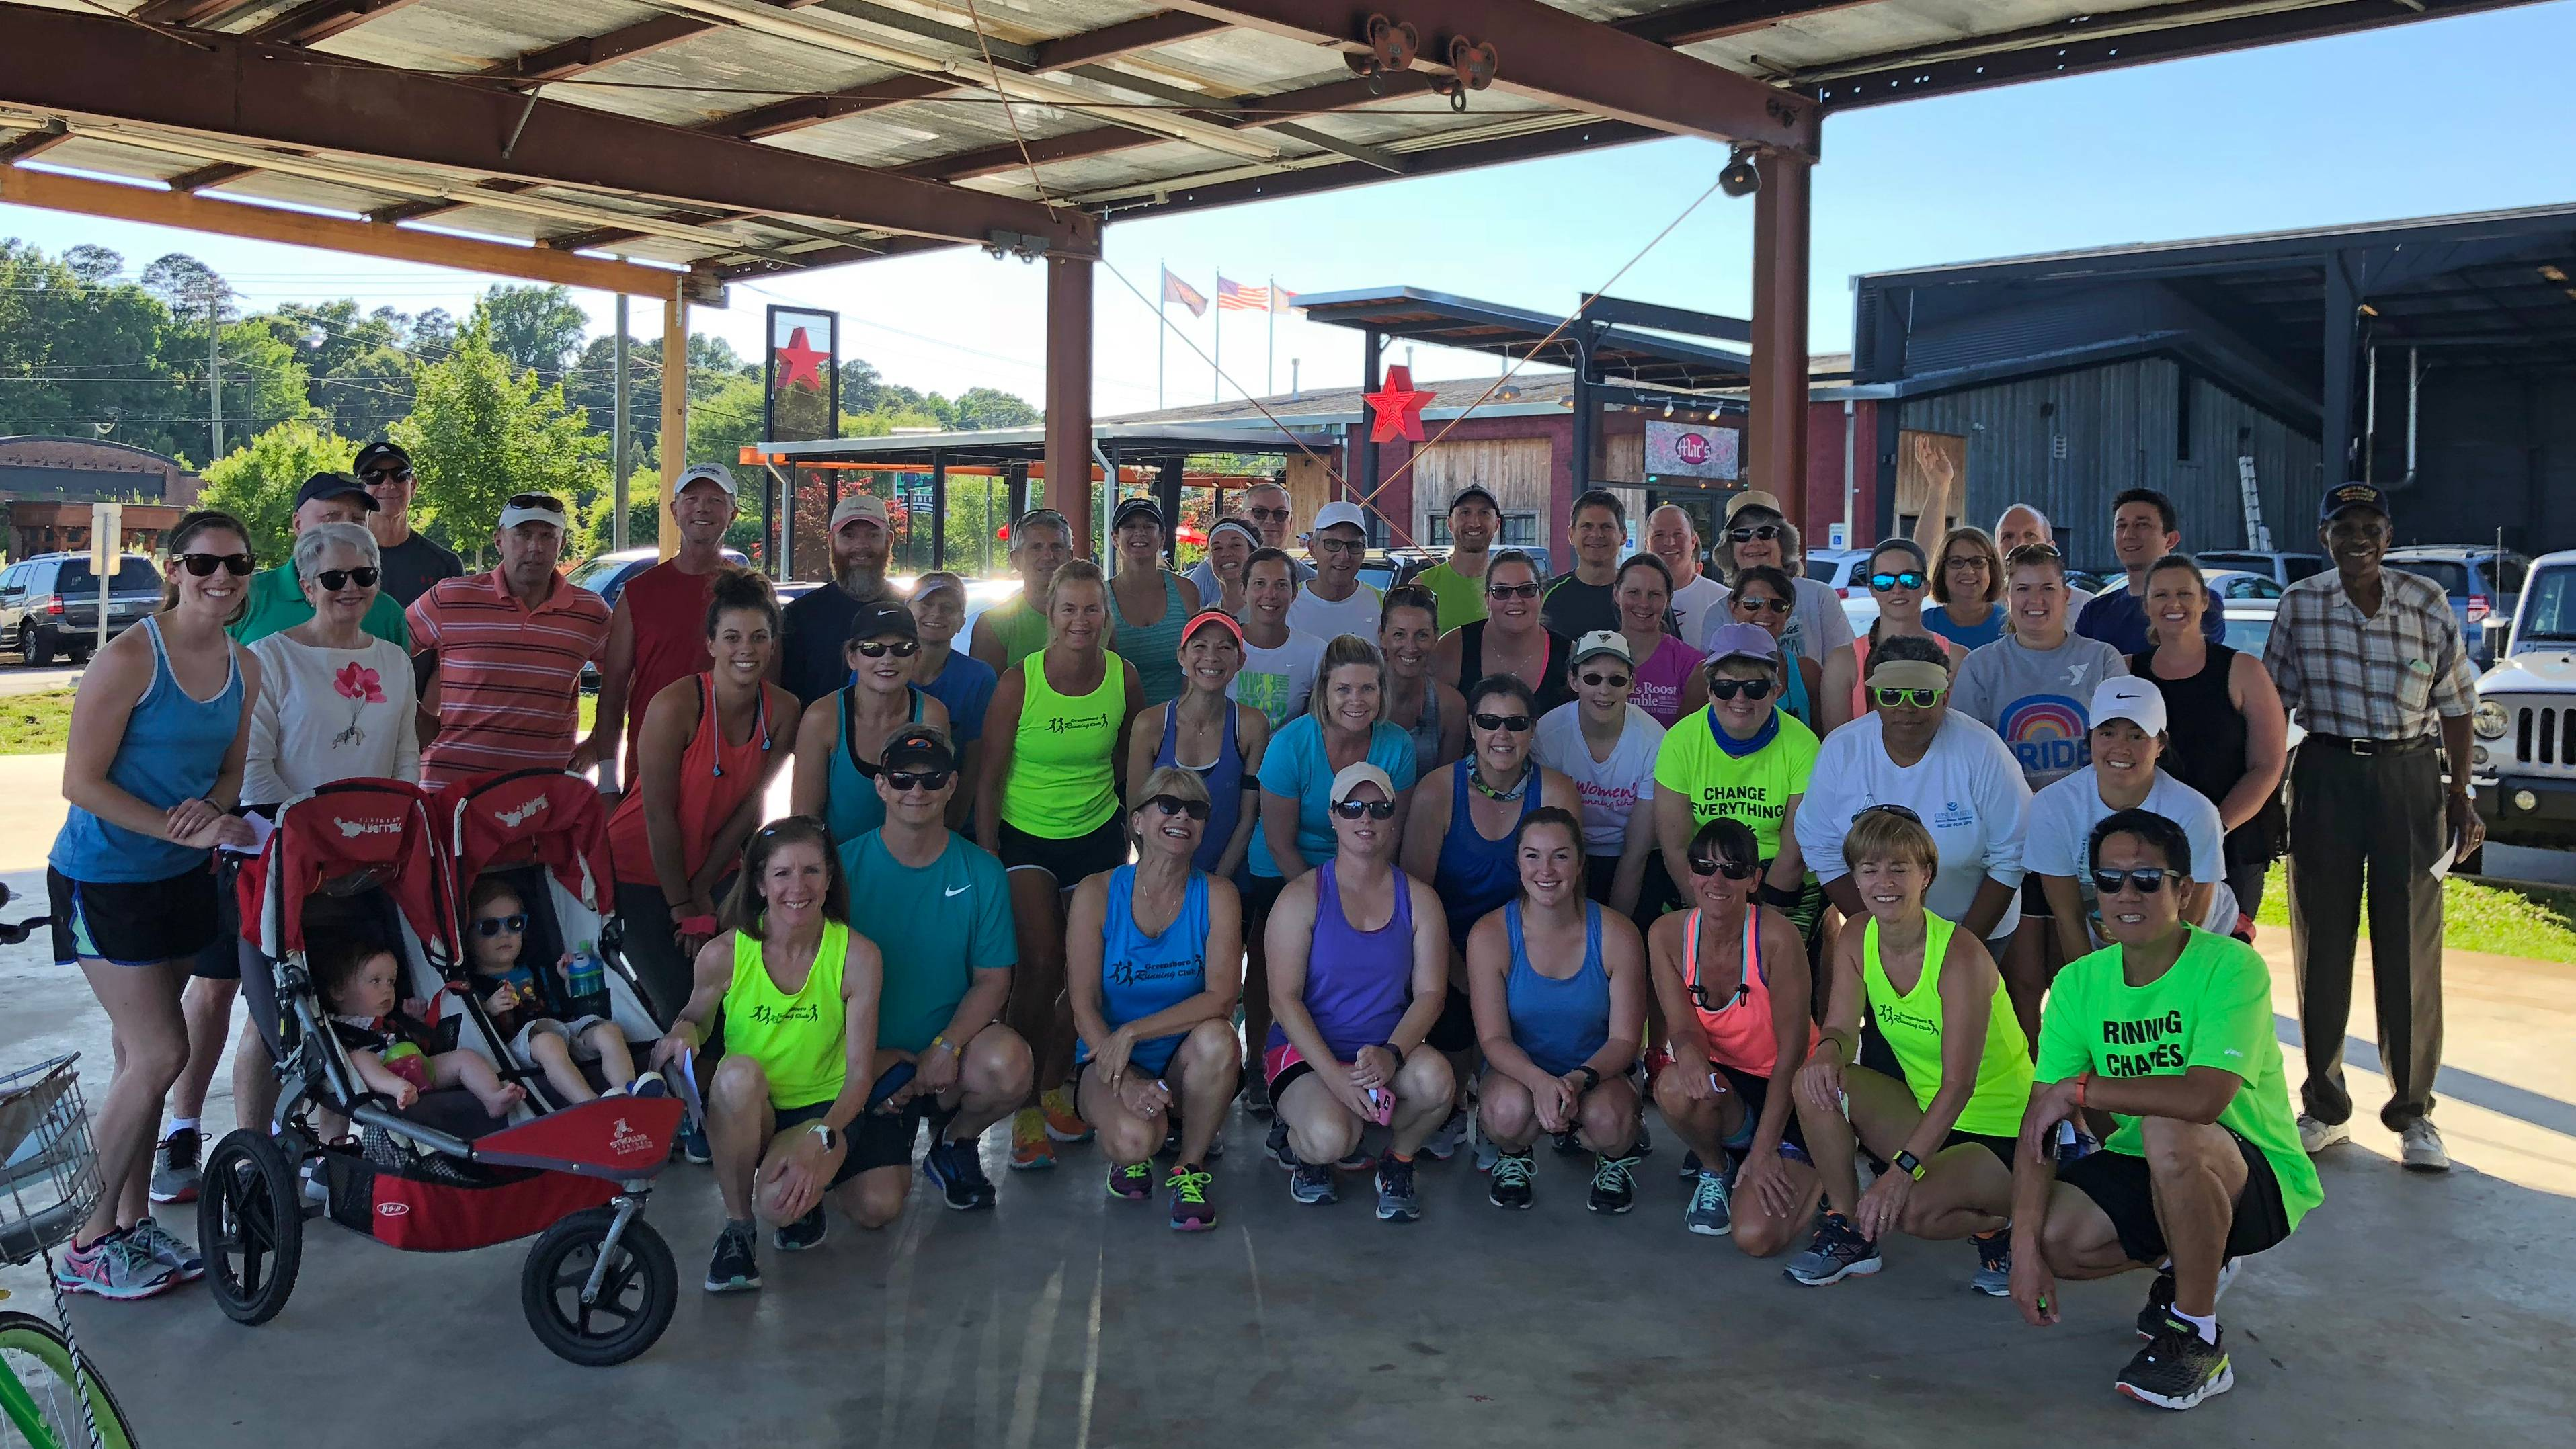 Neighborhood Run #8 - June 5, 2018